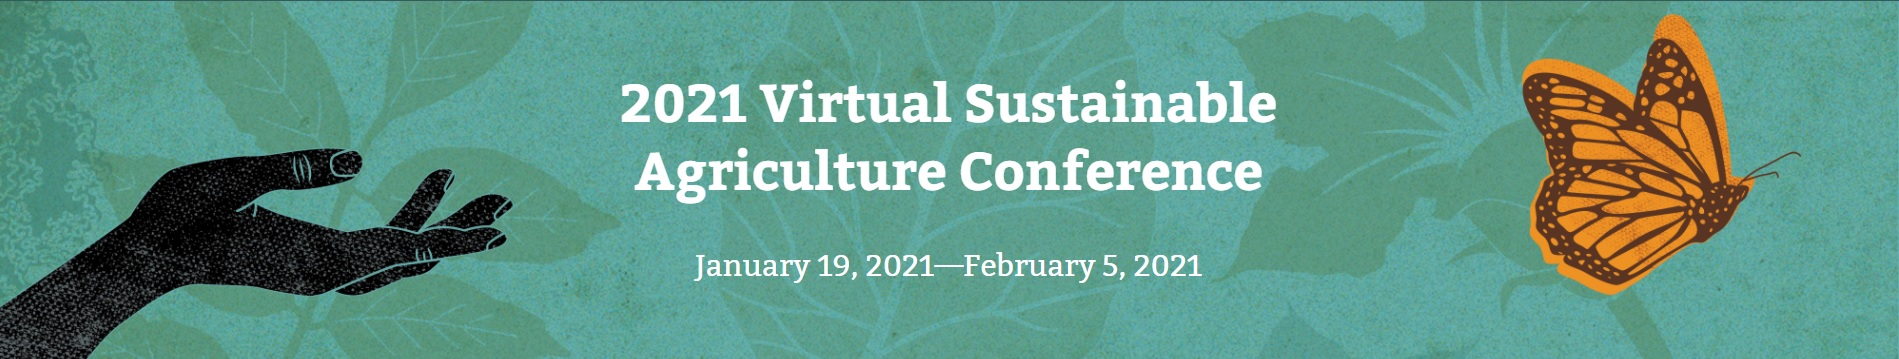 Pasa 2021 Virtual Sustainable Agriculture Conference -- Banner image 1